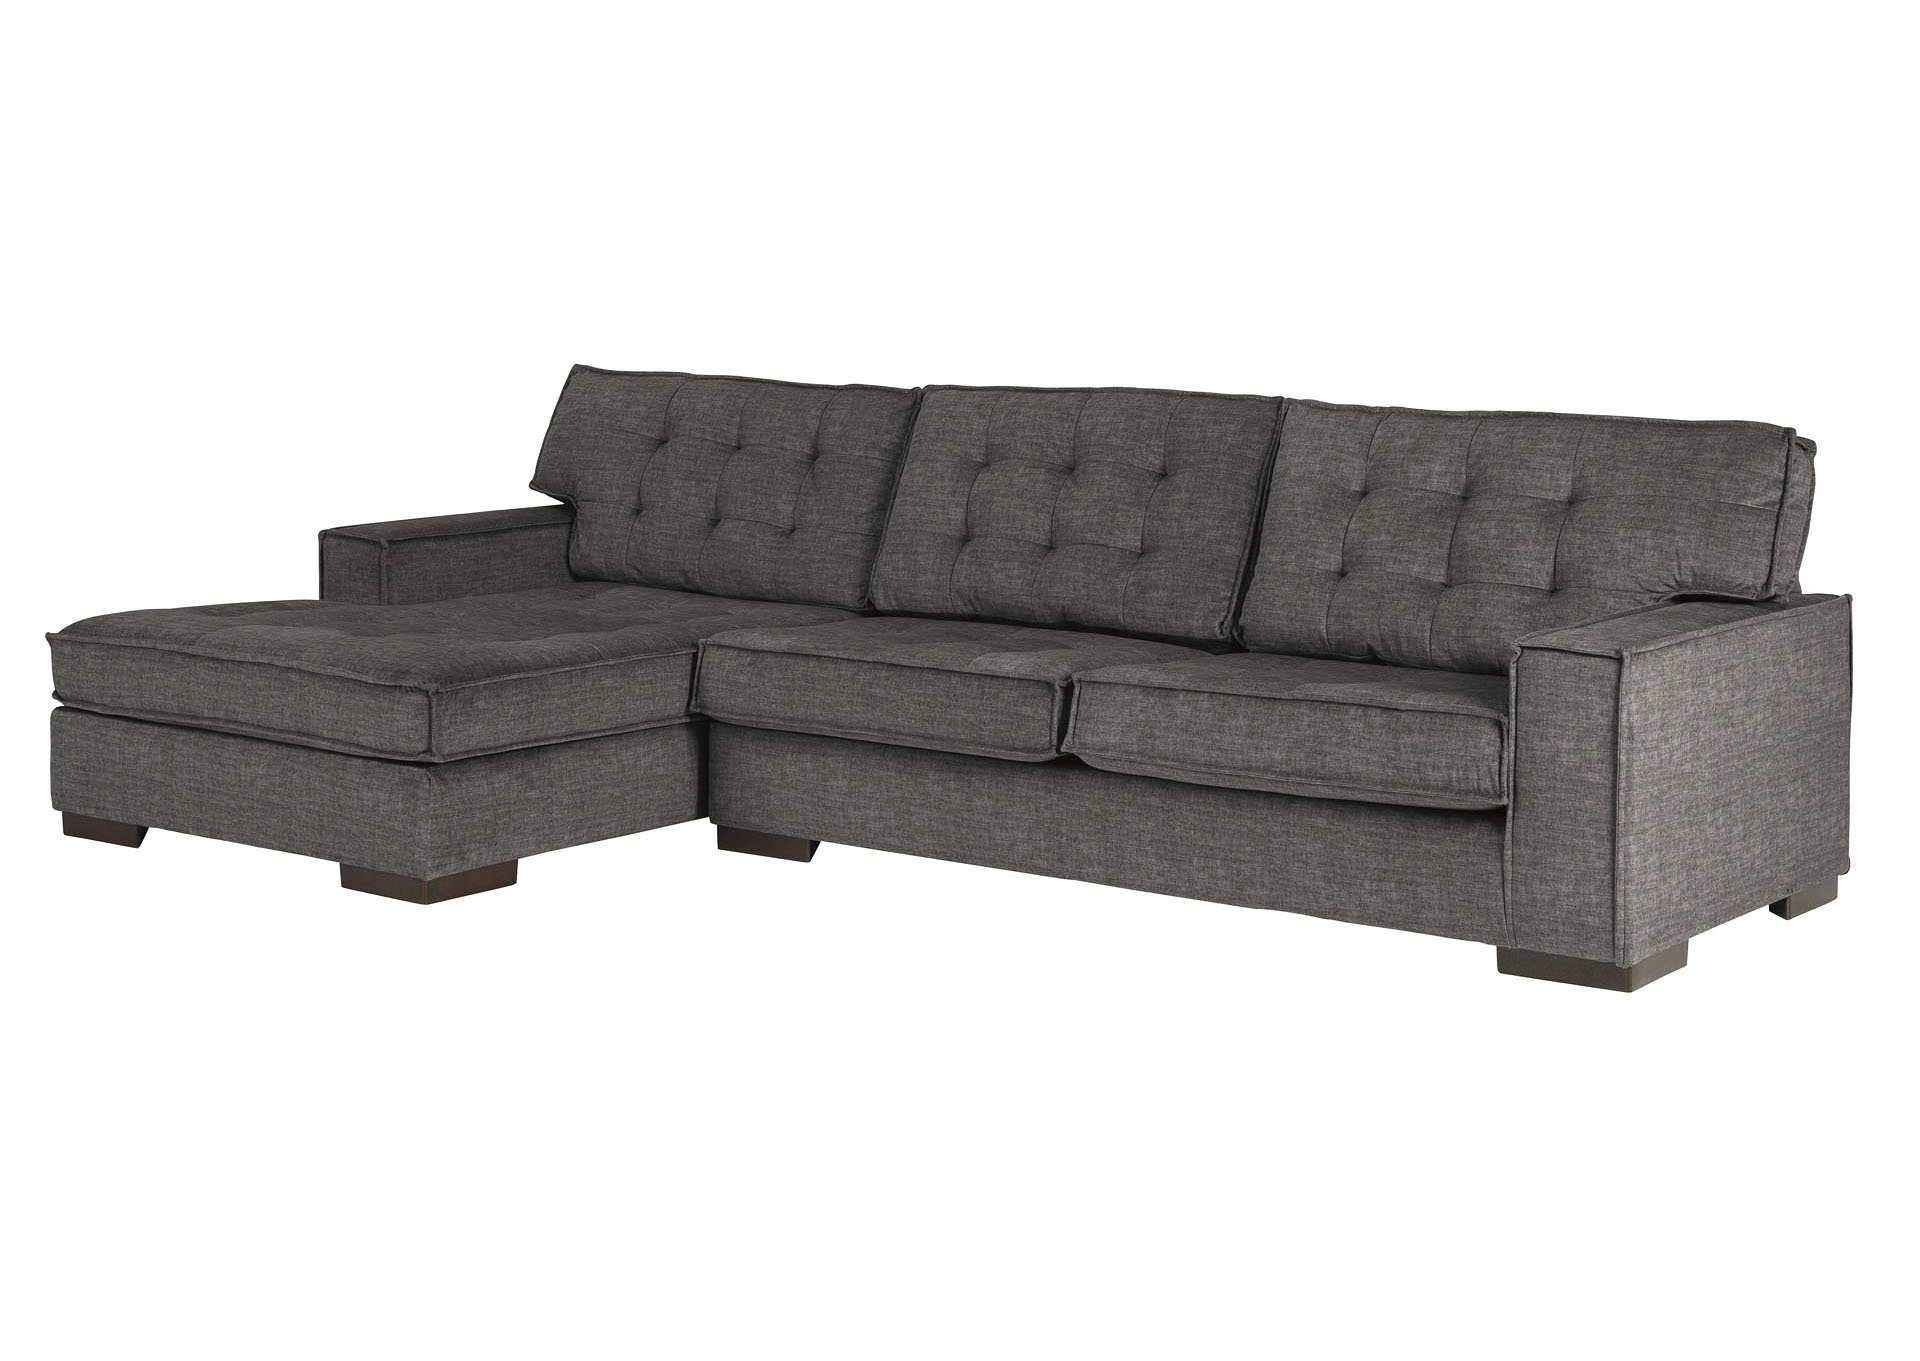 Popular Coulee Point 2 Piece Sectional With Chaise Ashley Within 2pc Burland Contemporary Sectional Sofas Charcoal (View 4 of 20)